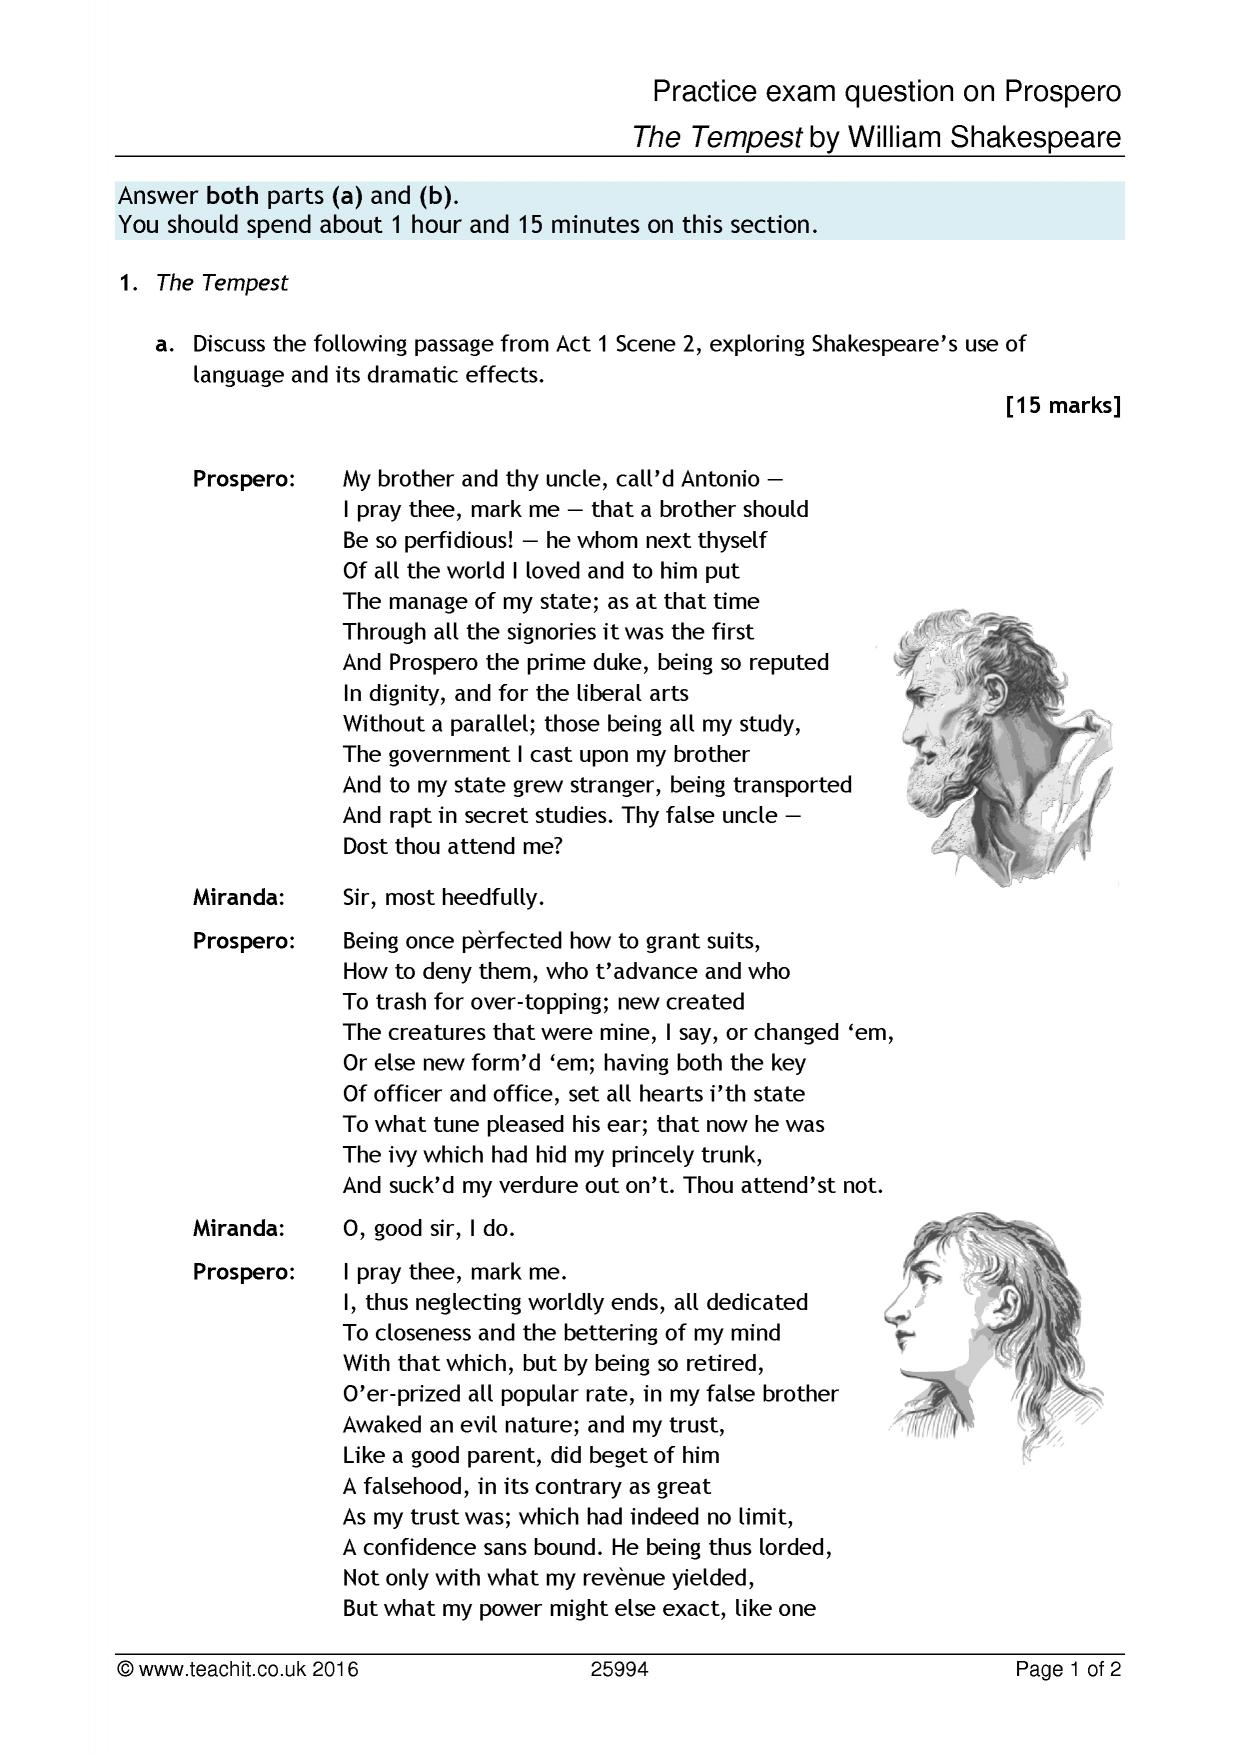 prospero character analysis Free essay: prospero, of course, is the play he is the exiled duke of milan and the father of miranda, as well as a powerful magician ruler of a remote.